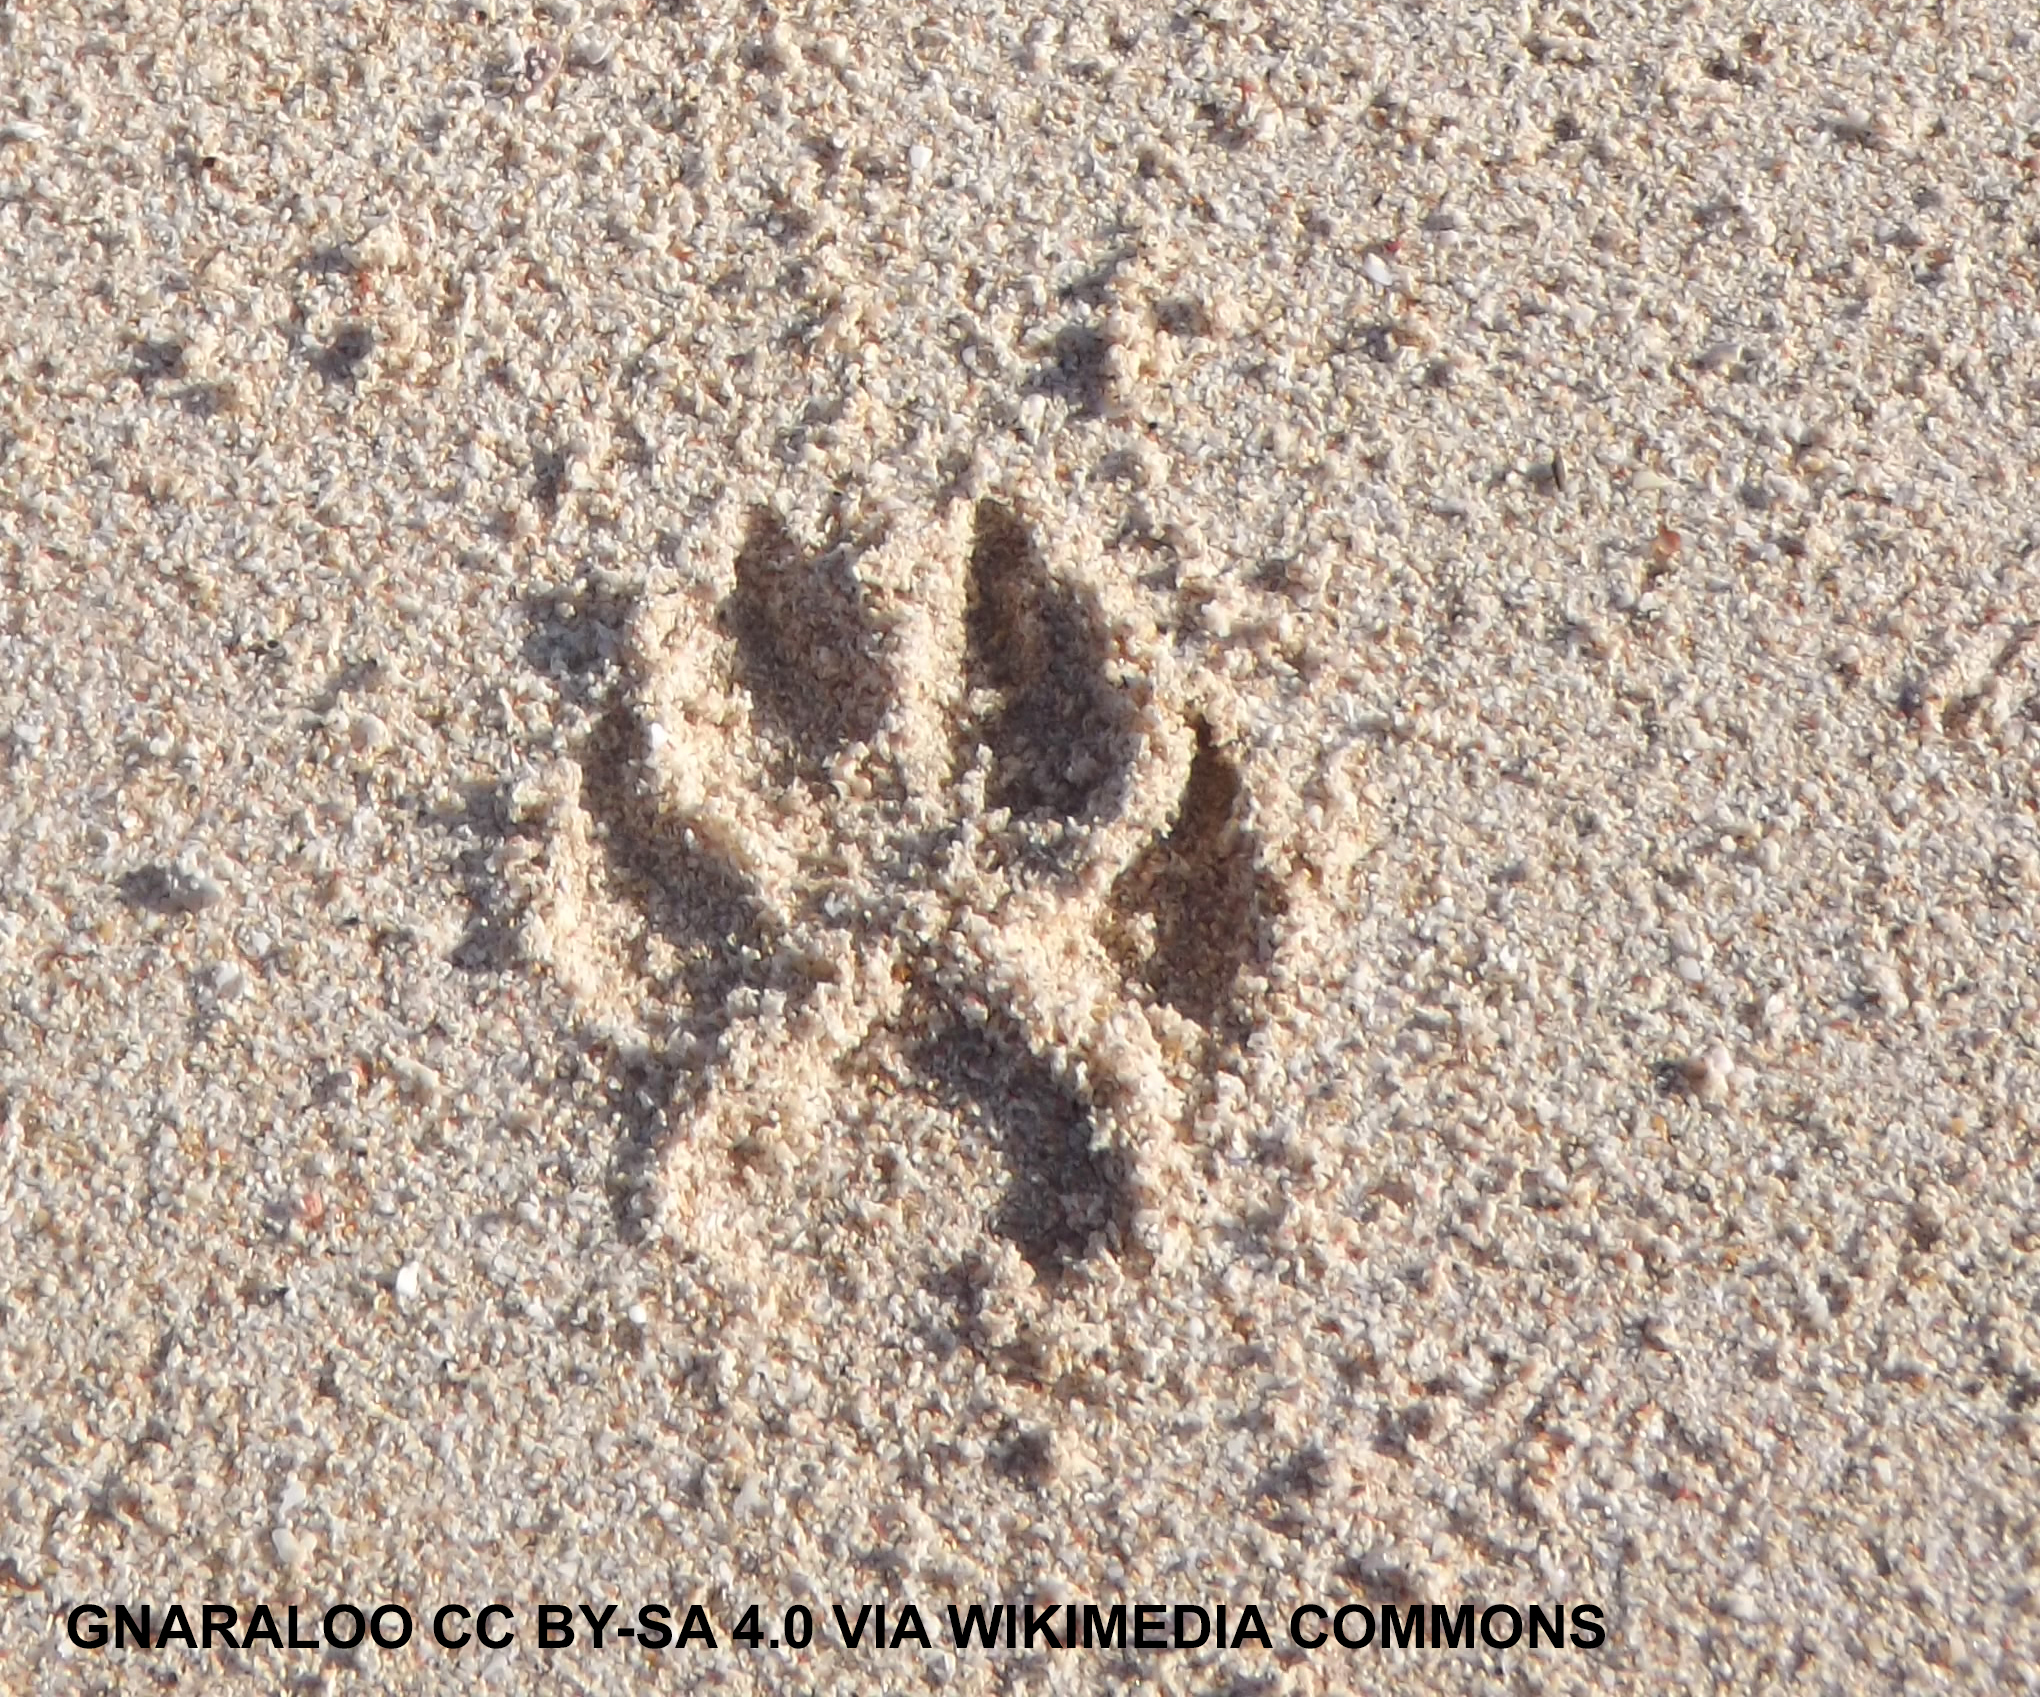 A dogs footprint in sand